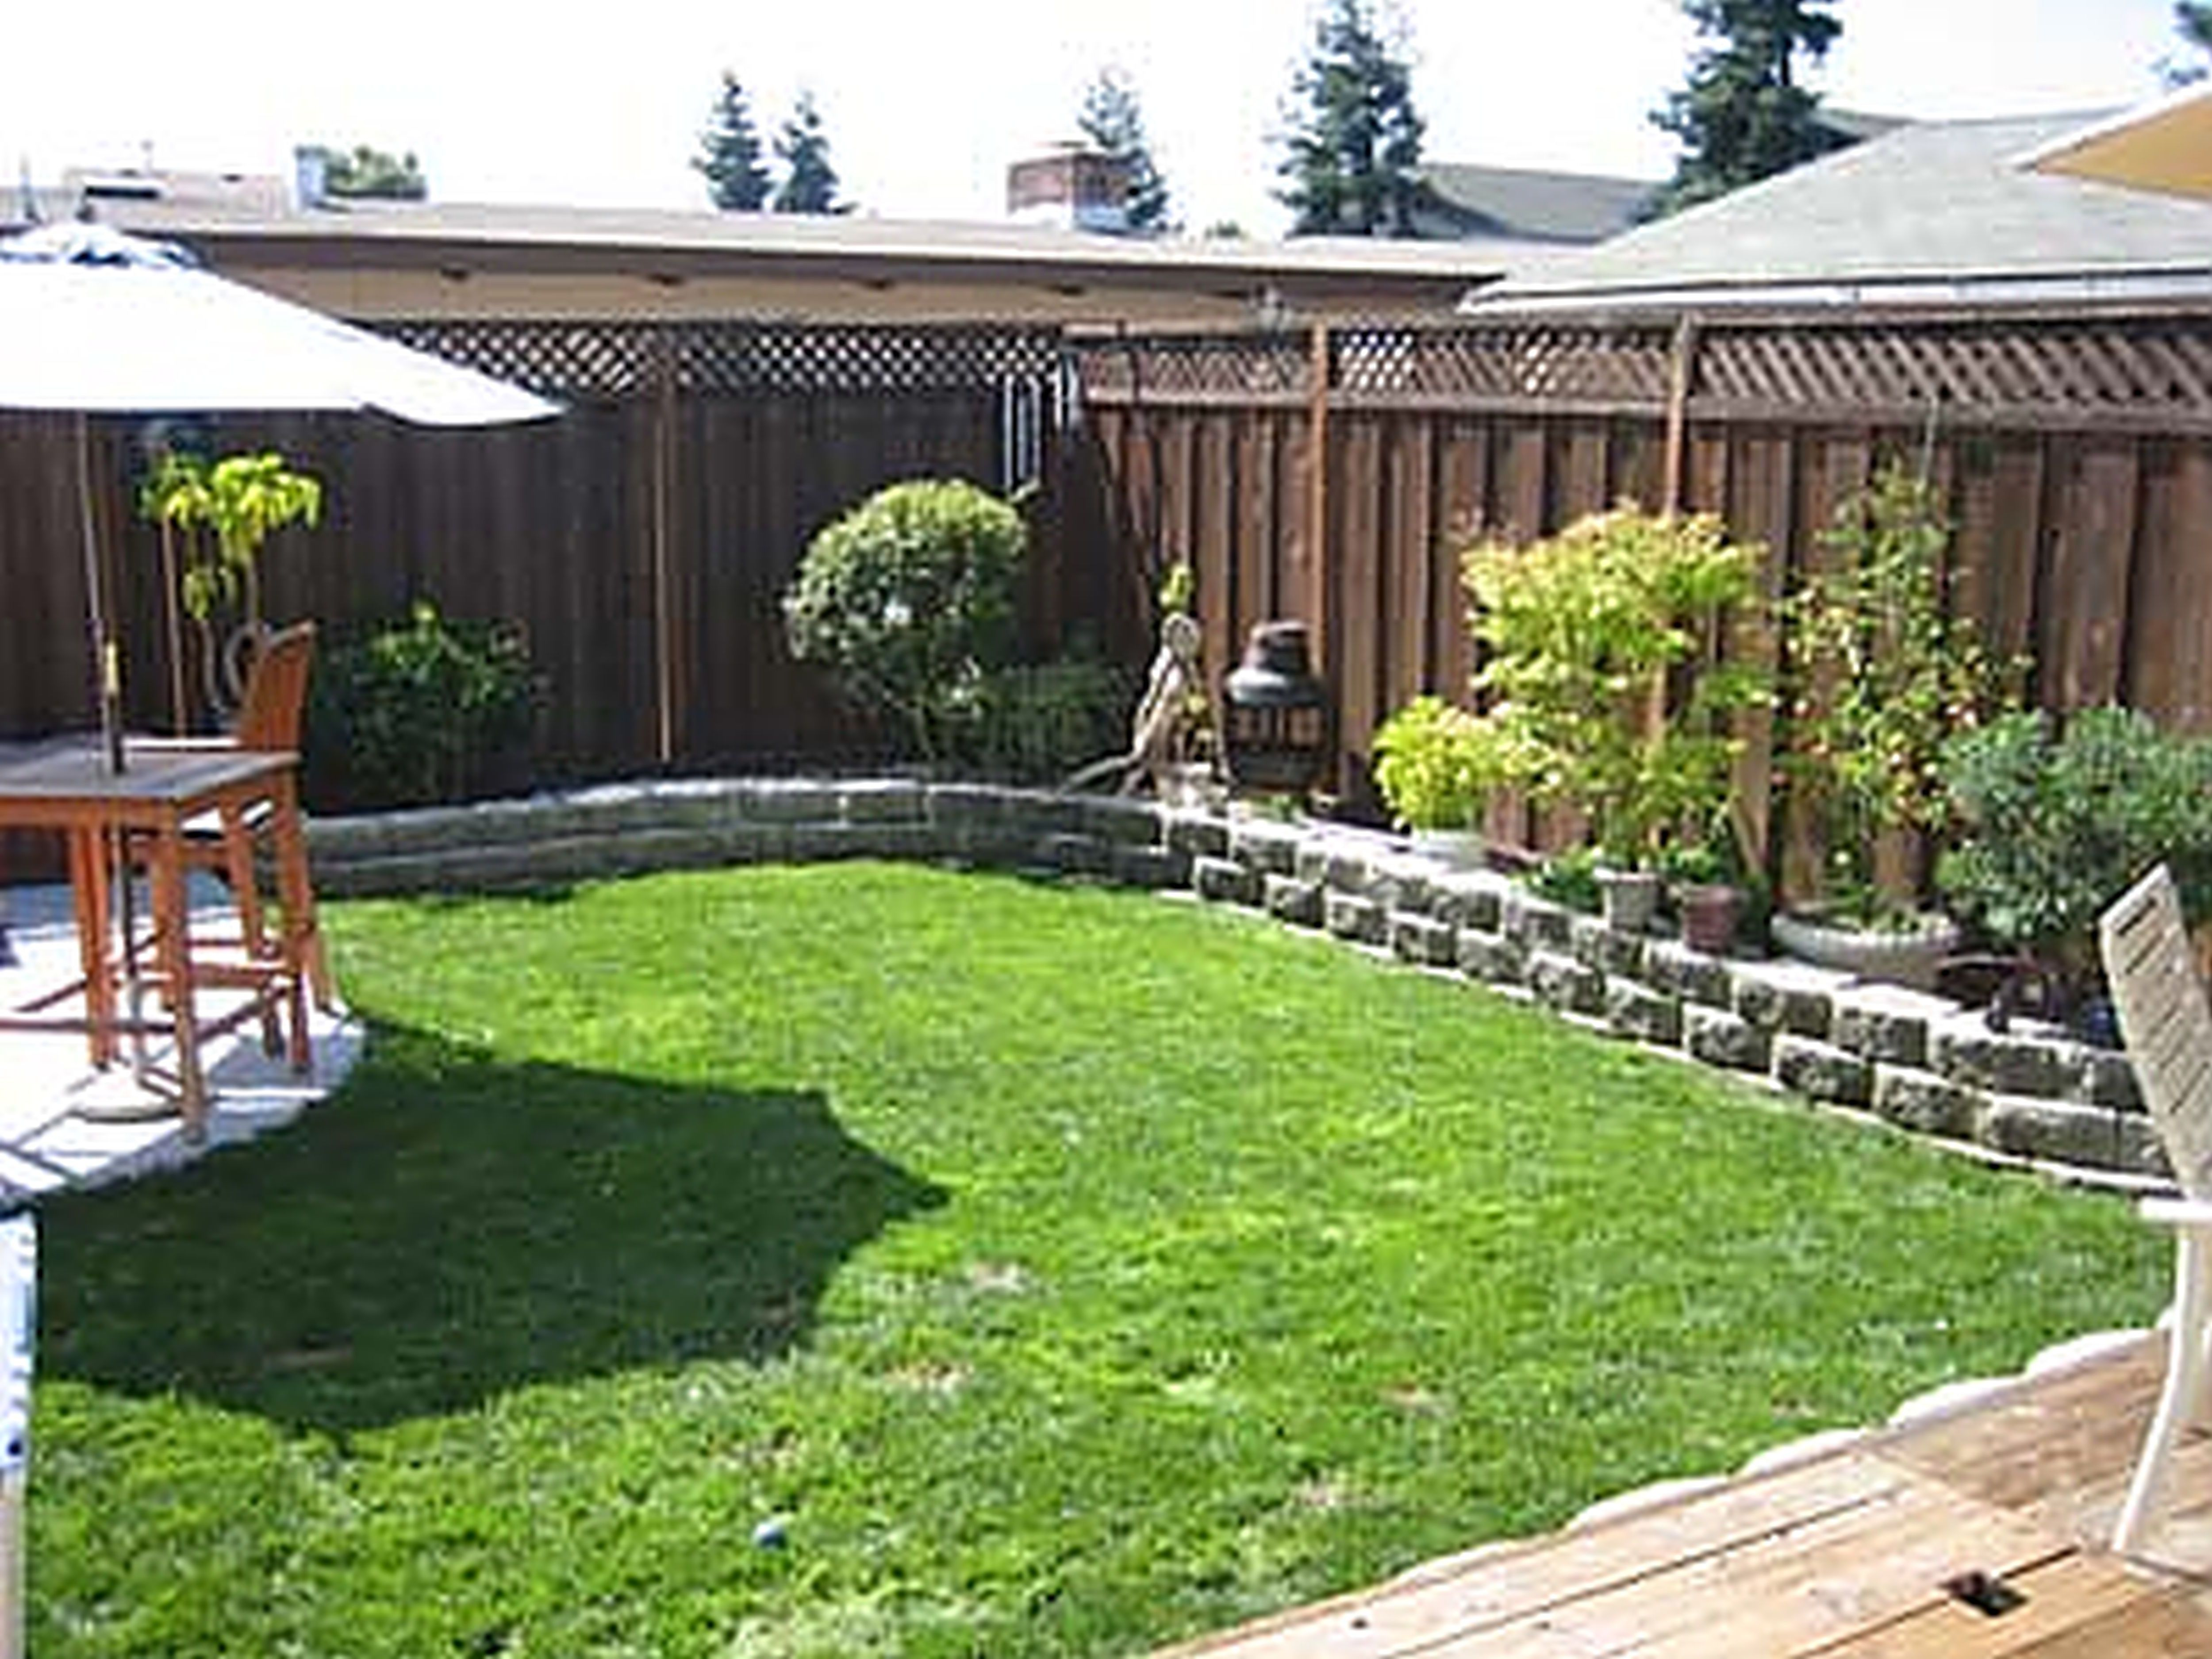 Yard landscaping ideas on a budget small backyard for Yard landscaping ideas